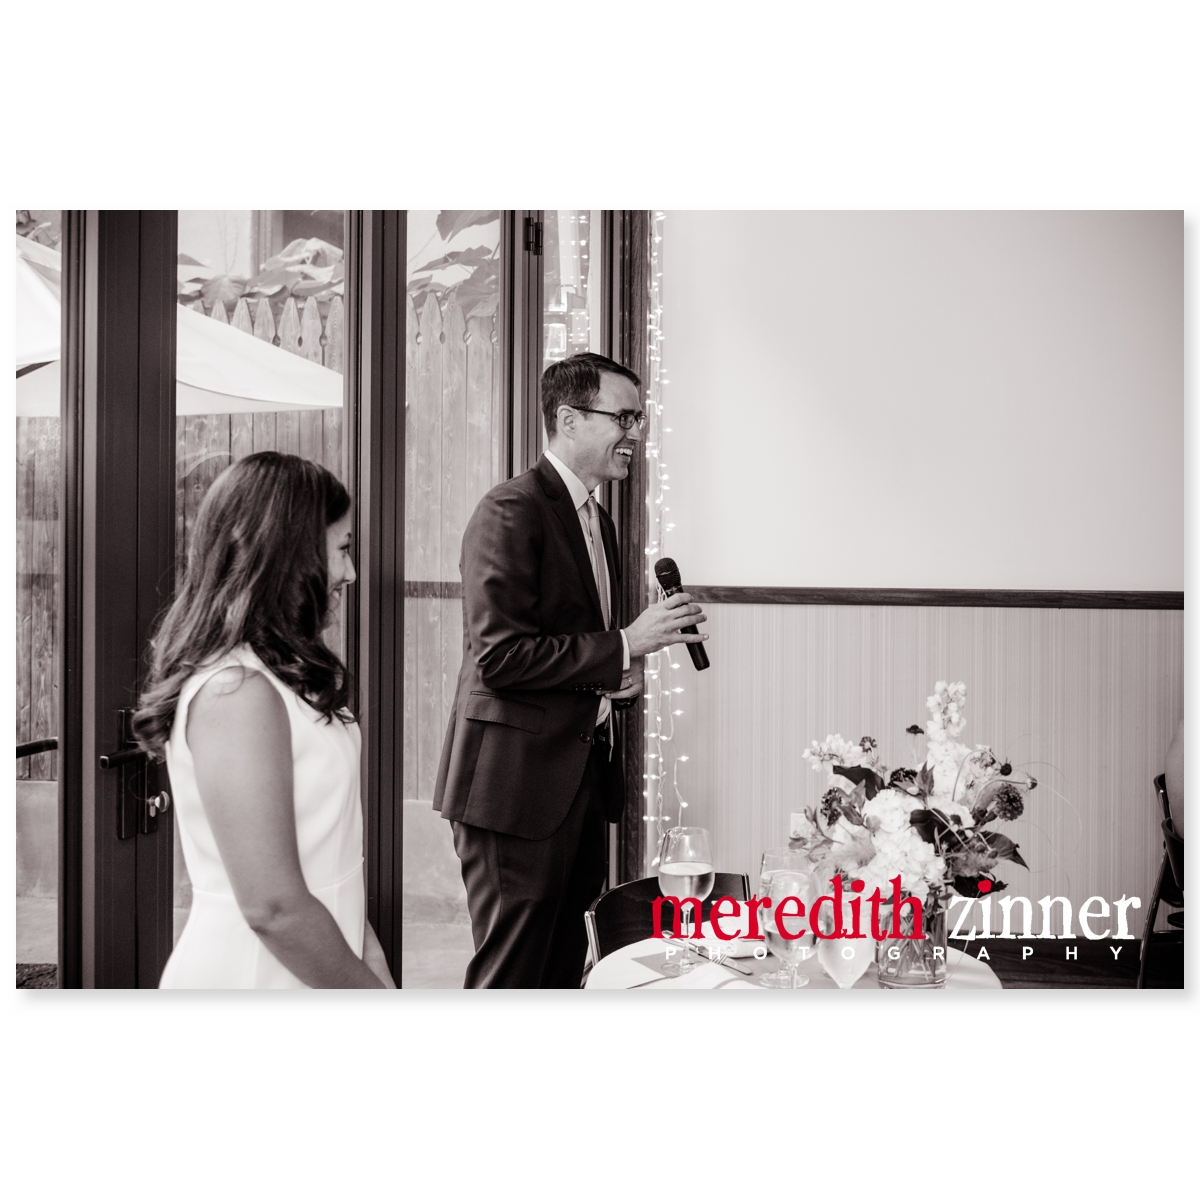 Meredith_Zinner_Photography_StilesCelebration_0156